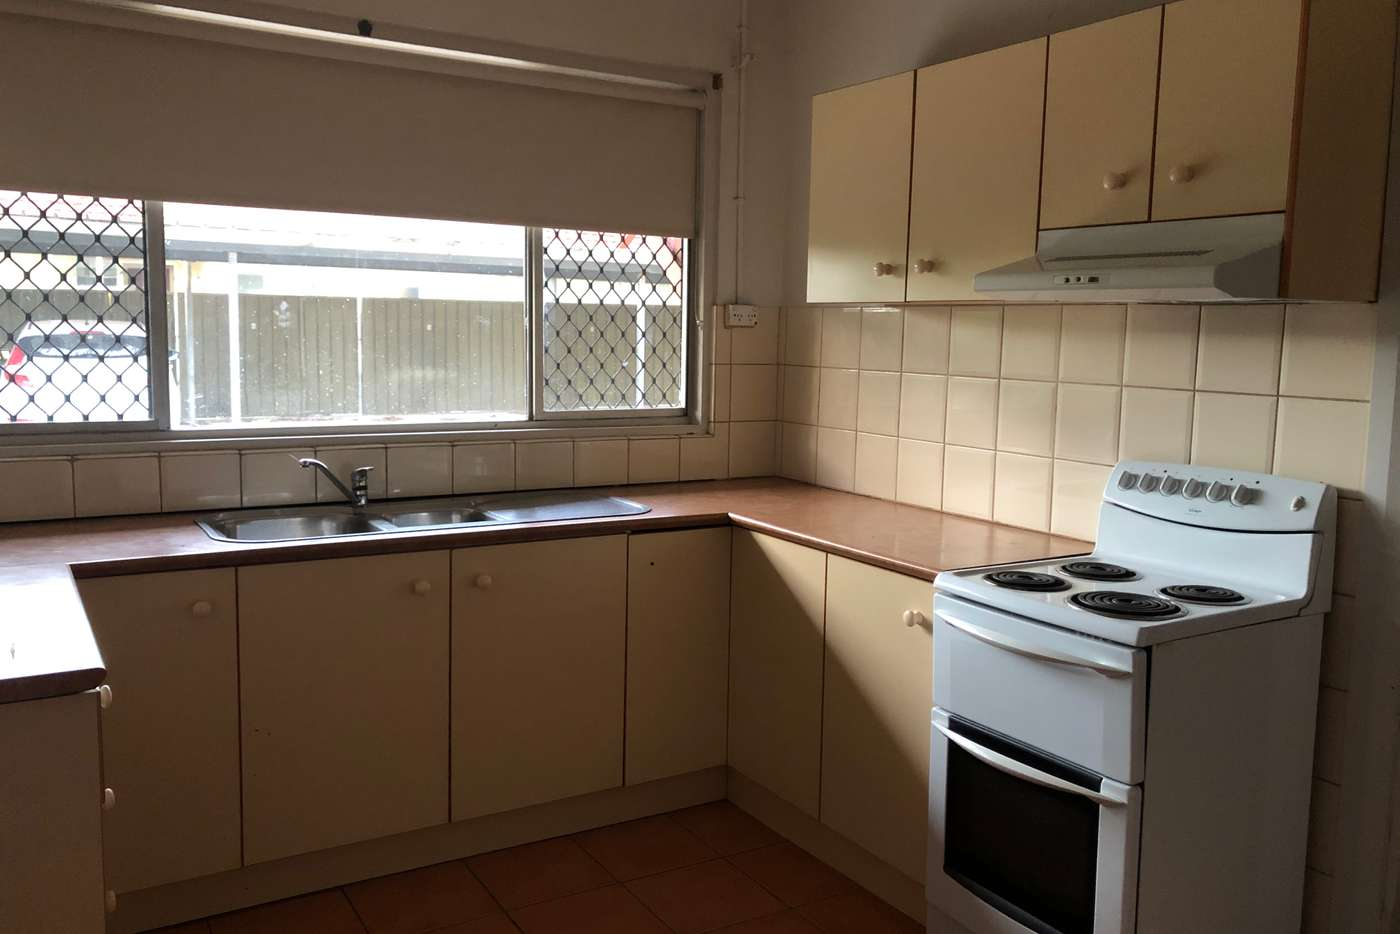 Sixth view of Homely unit listing, 6/378 Tapleys Hill Road, Seaton SA 5023